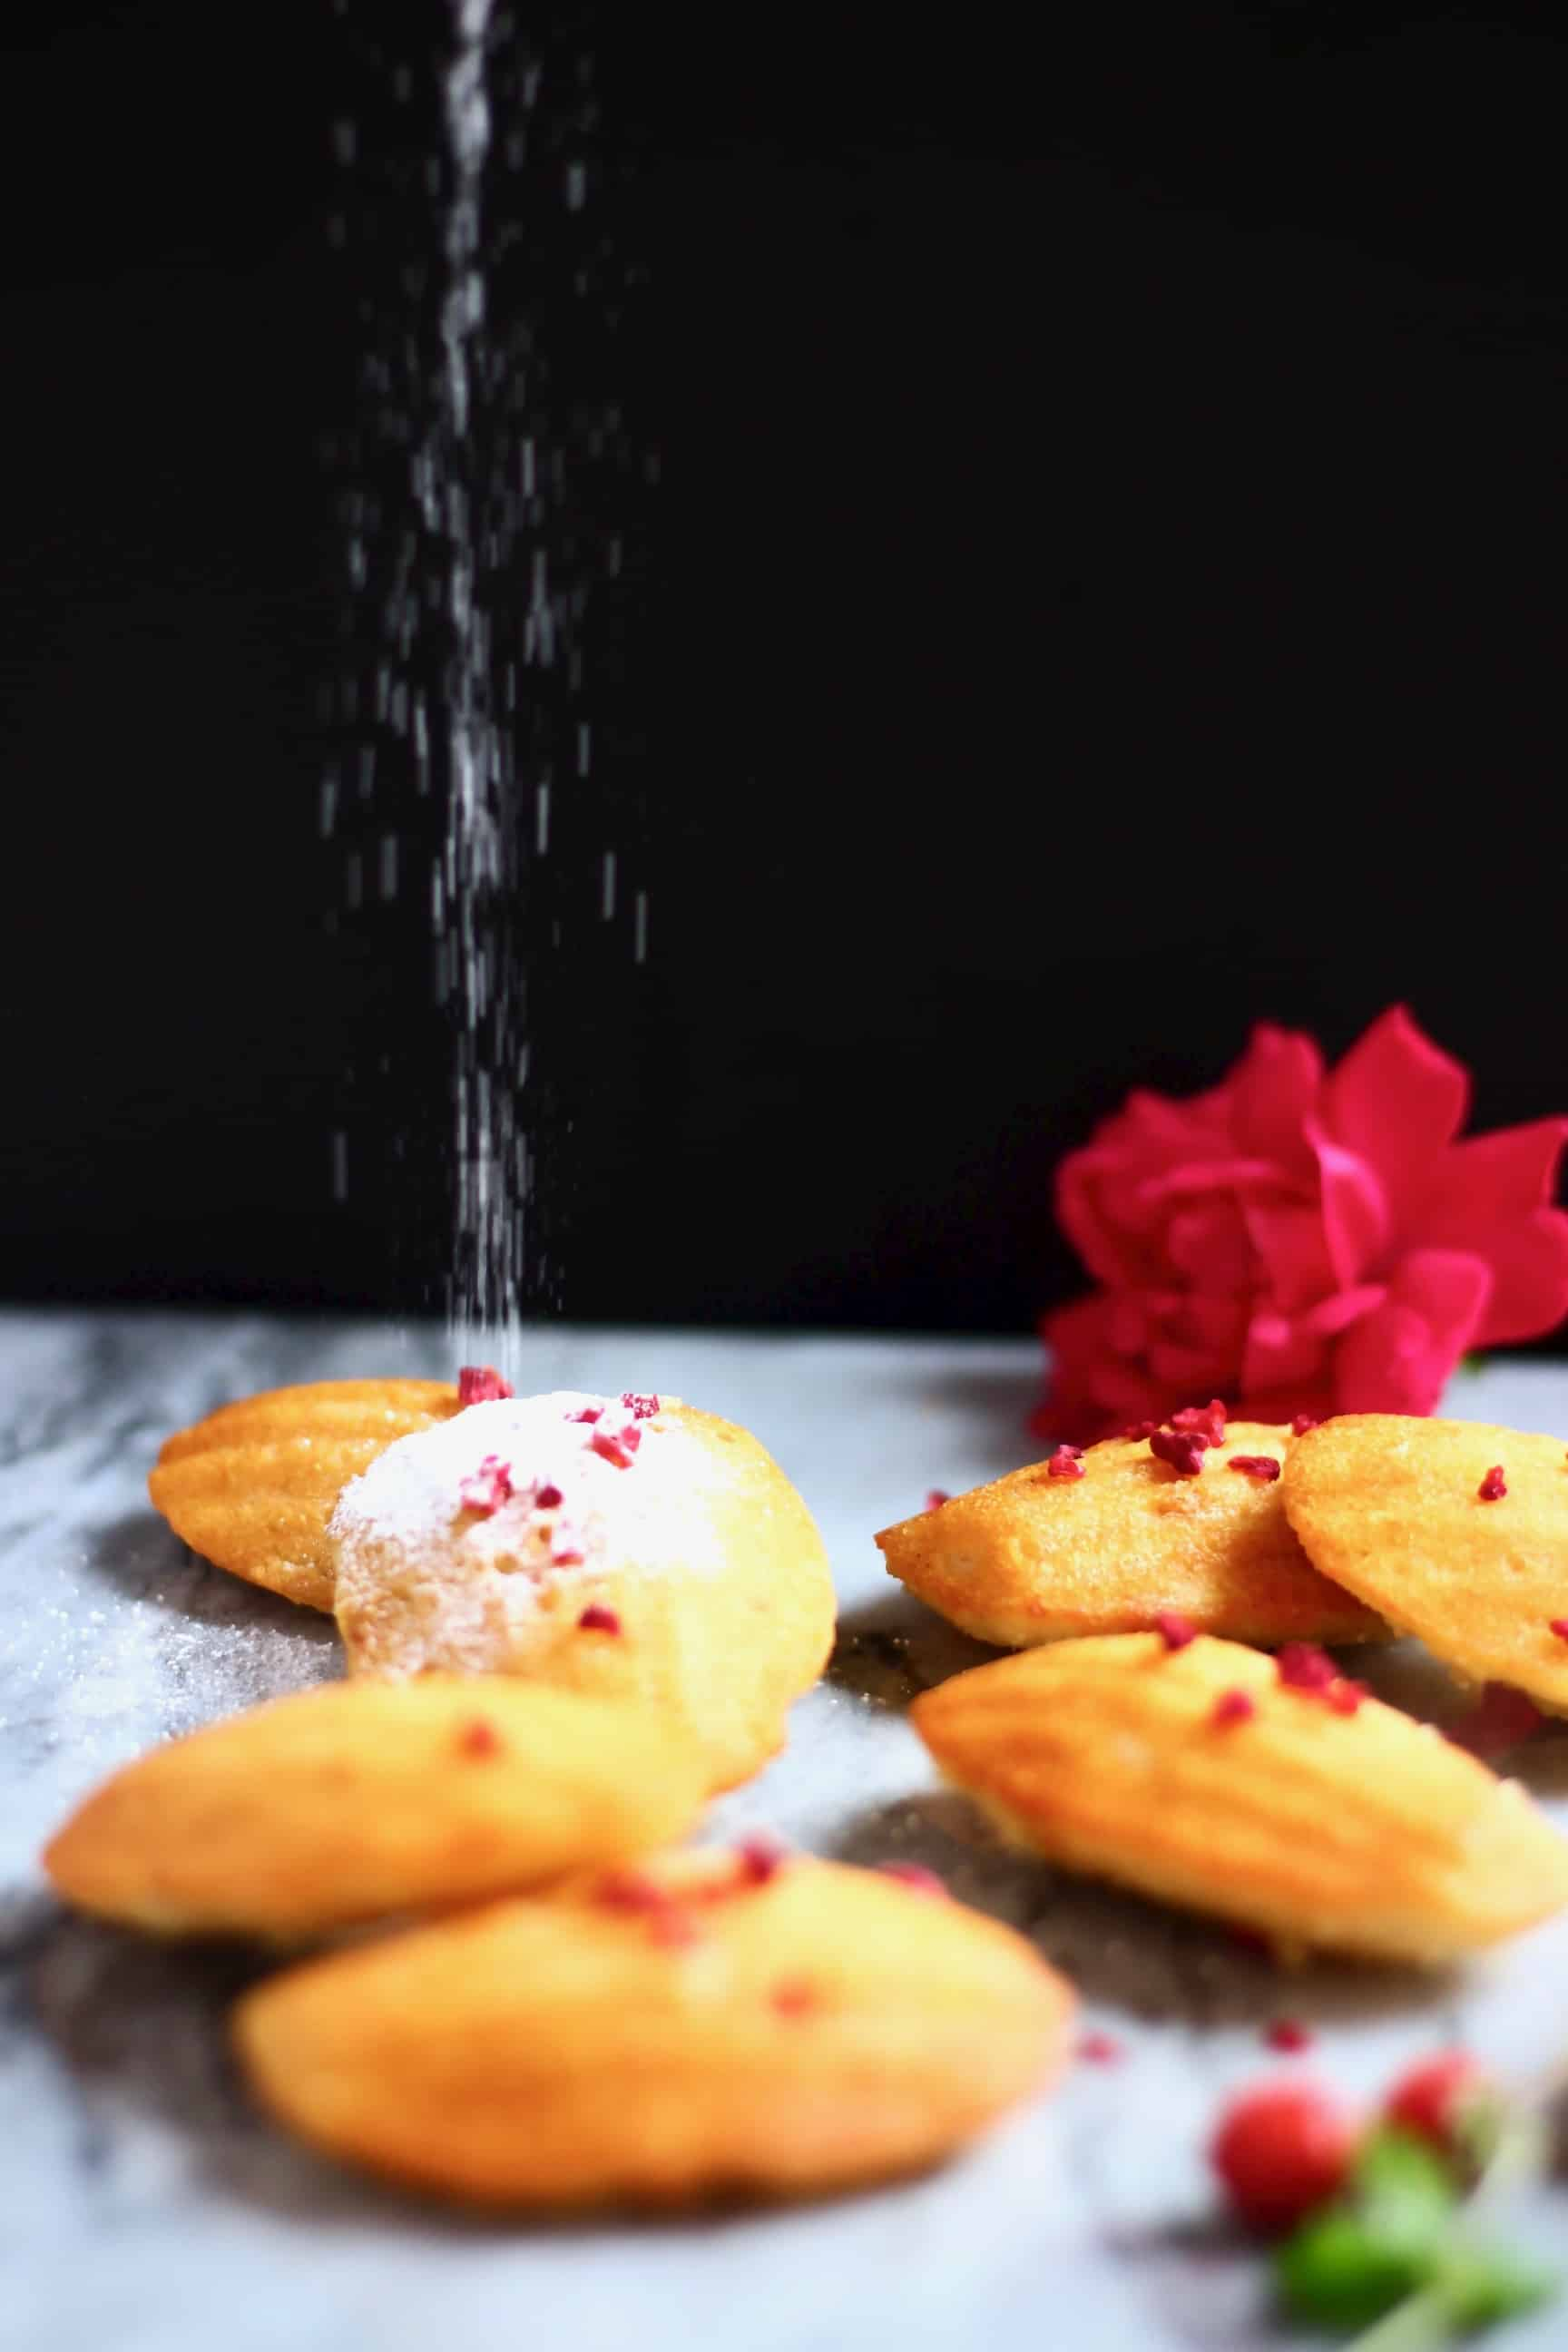 Seven madeleines on a marble surface against a black background with icing sugar being sprinkled over